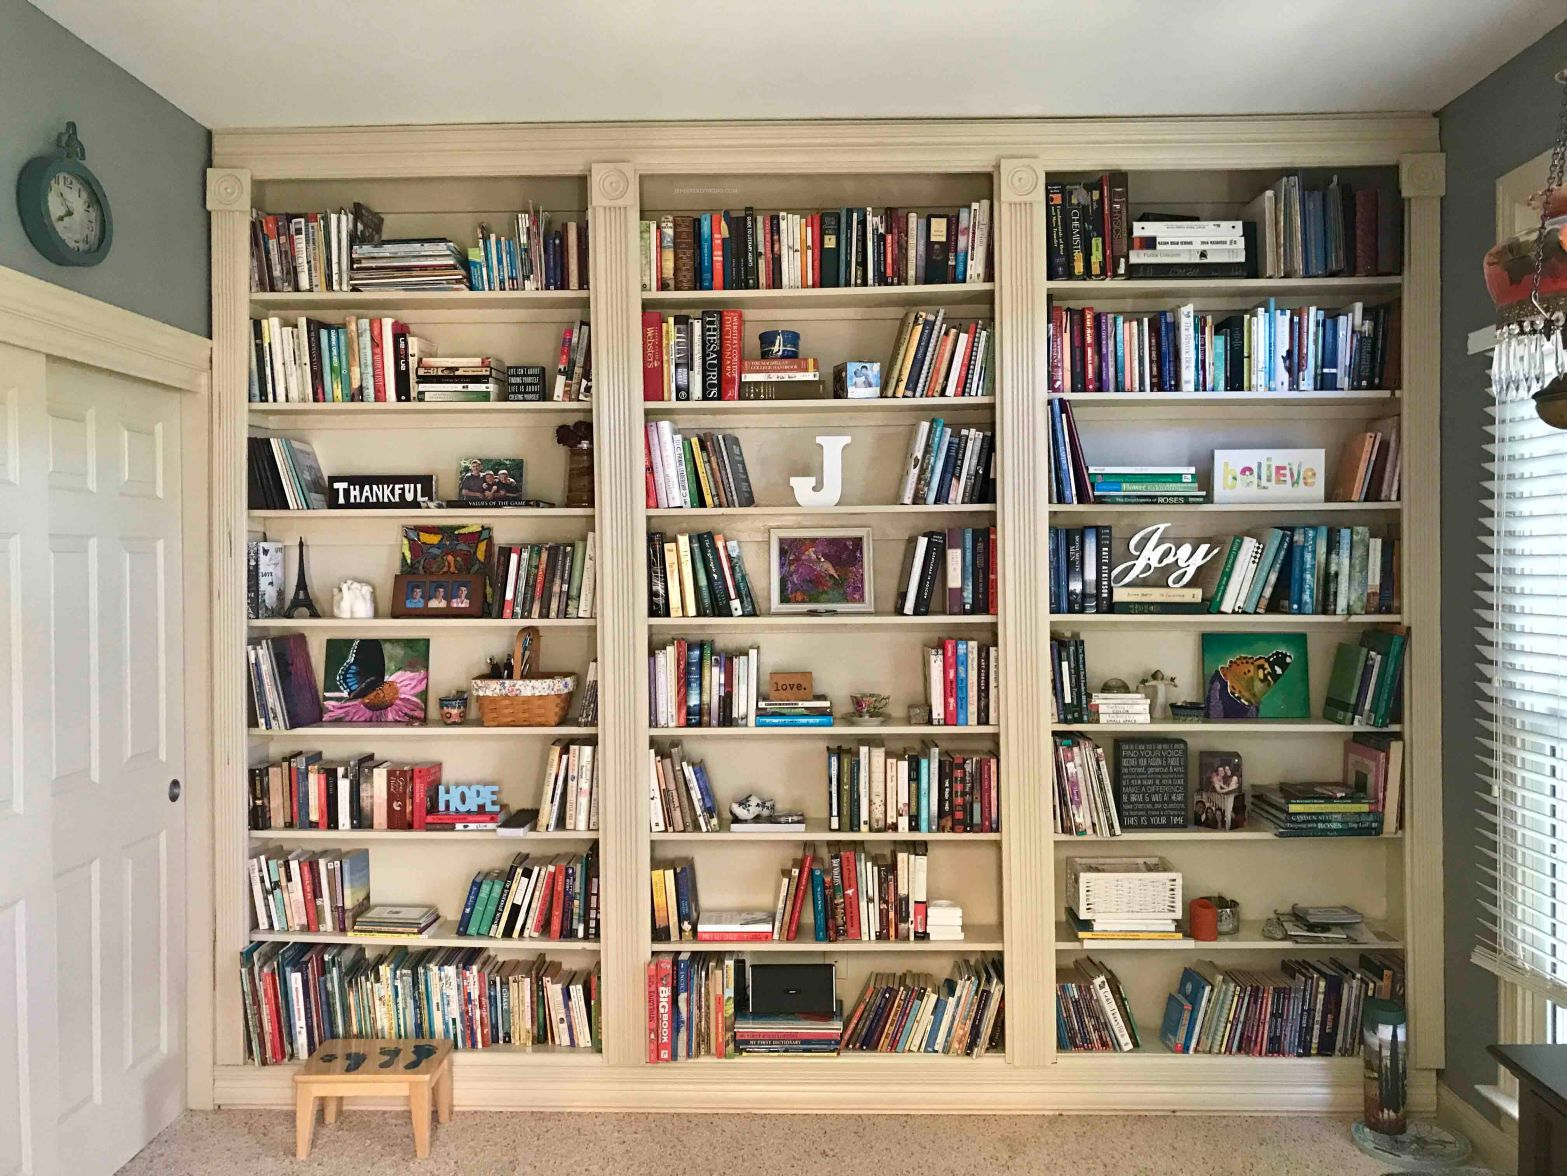 My dream bookcase